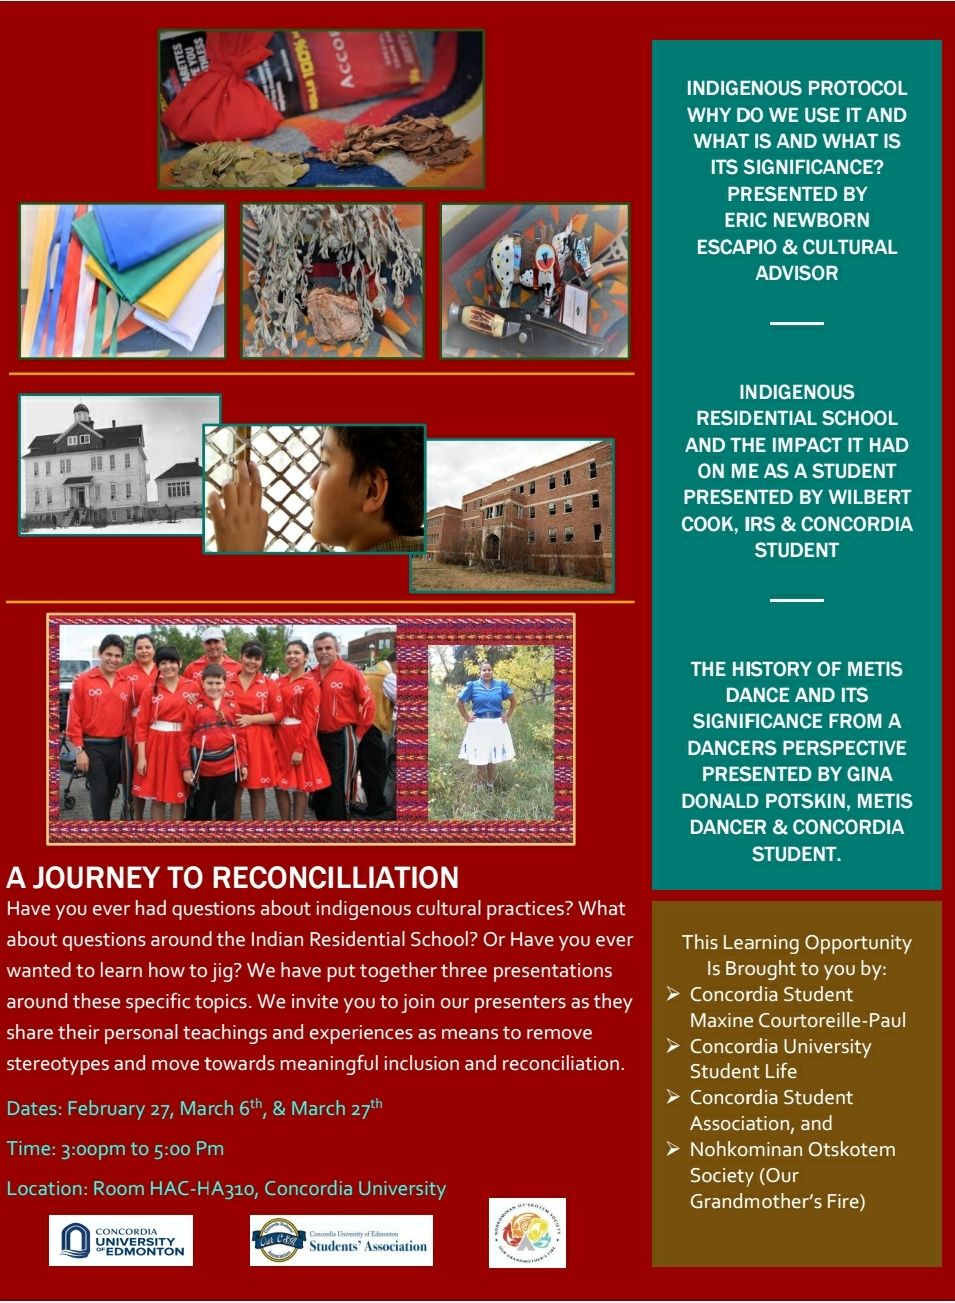 A Journey to Reconciliation  Presentations on Indigenous